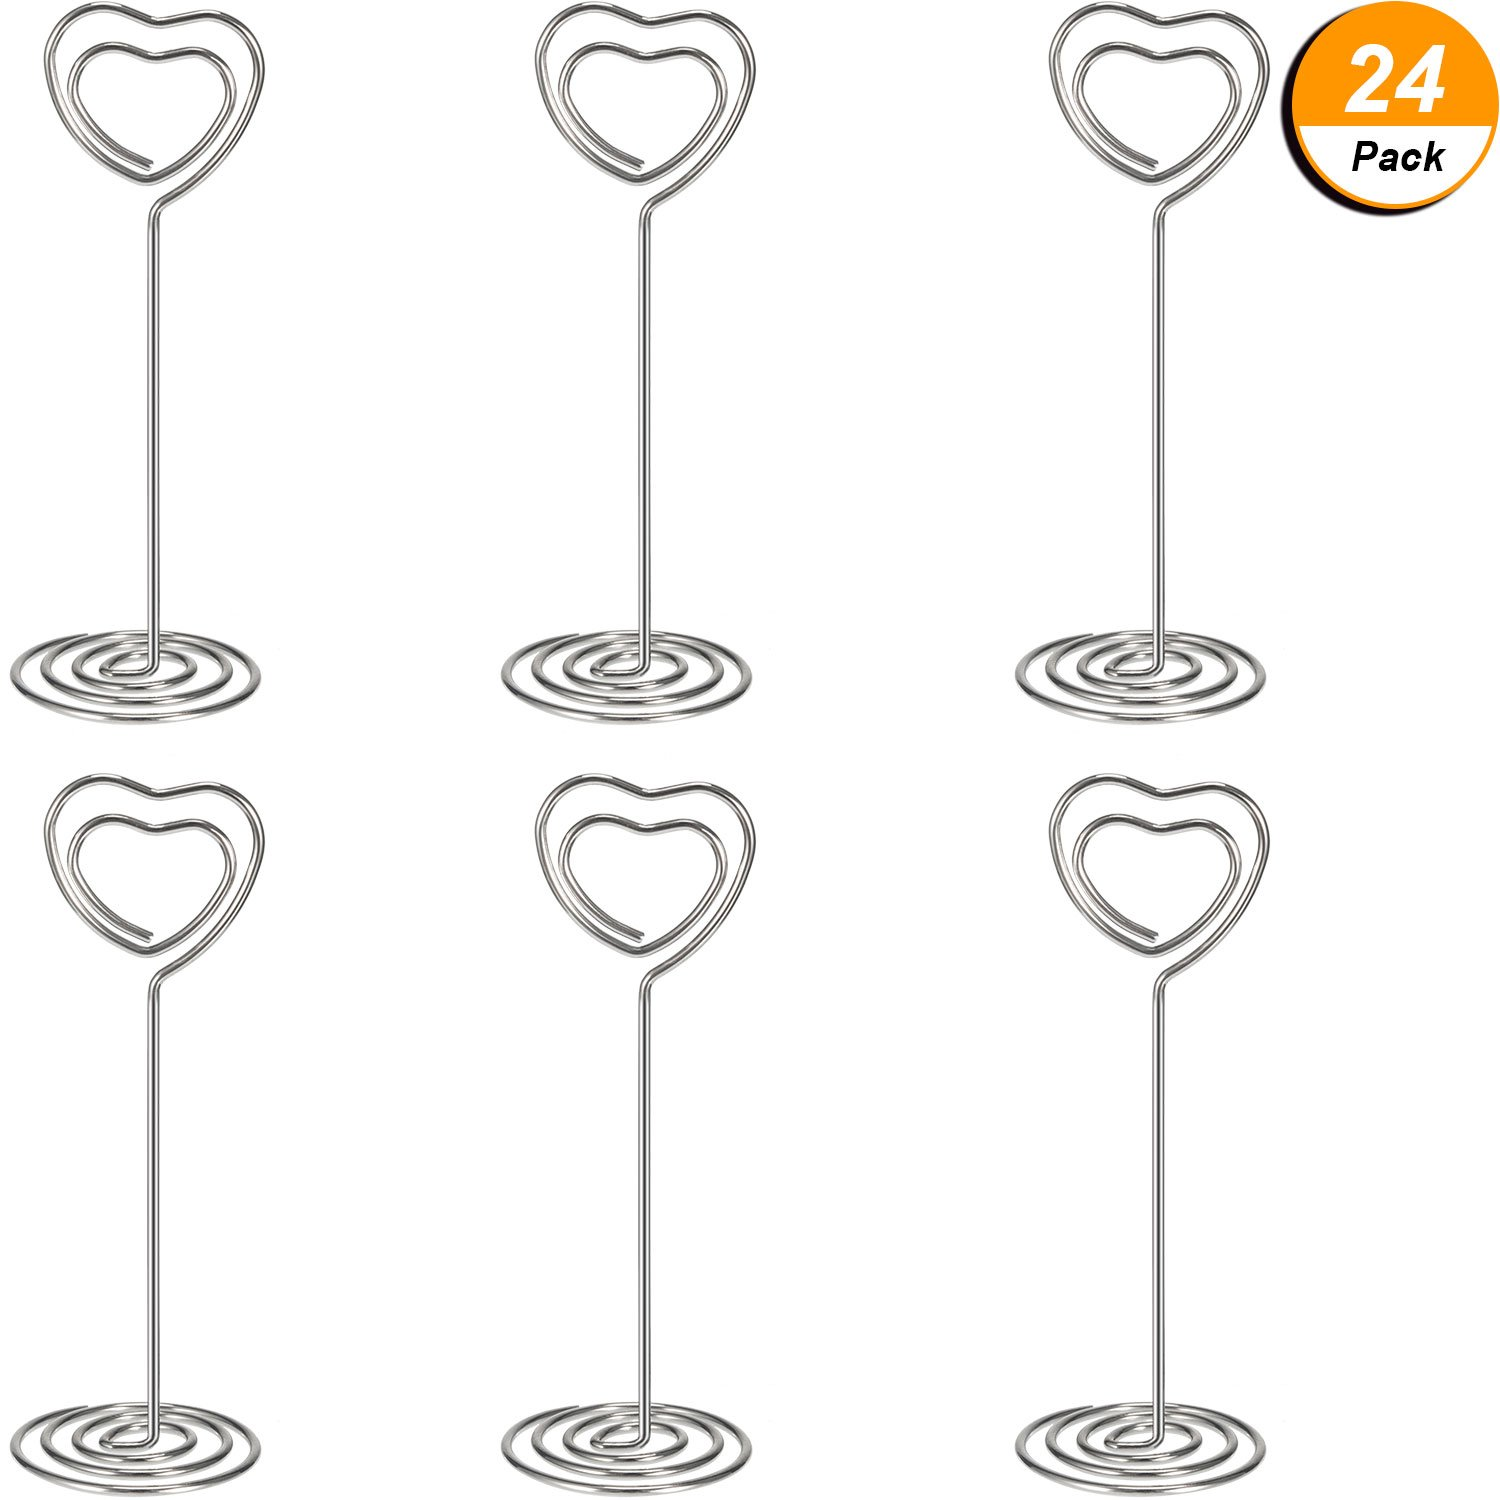 Shappy 24 Pack of Table Number Card Holders Photo Holder Stand Place Card Paper Menu Clips Holders, Heart Shape (Silver)